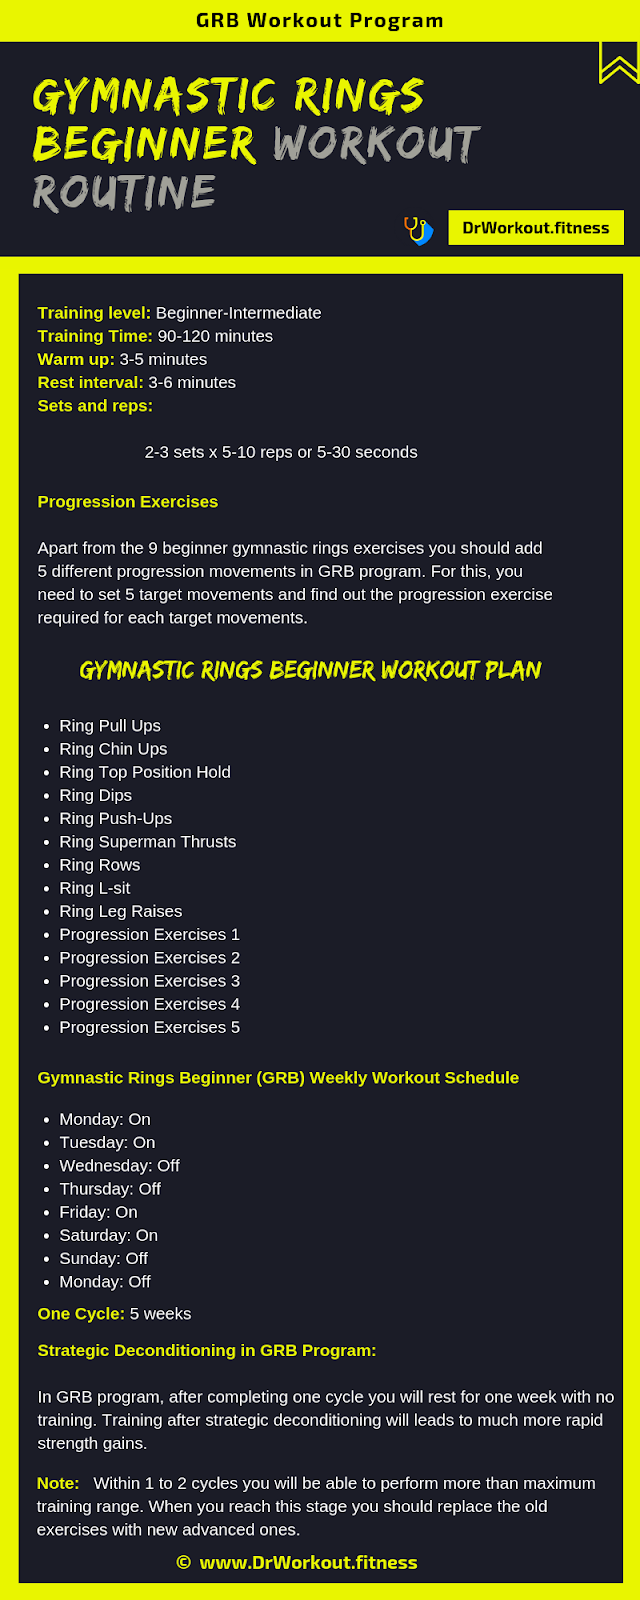 GYMNASTIC RINGS BEGINNER WORKOUT ROUTINE